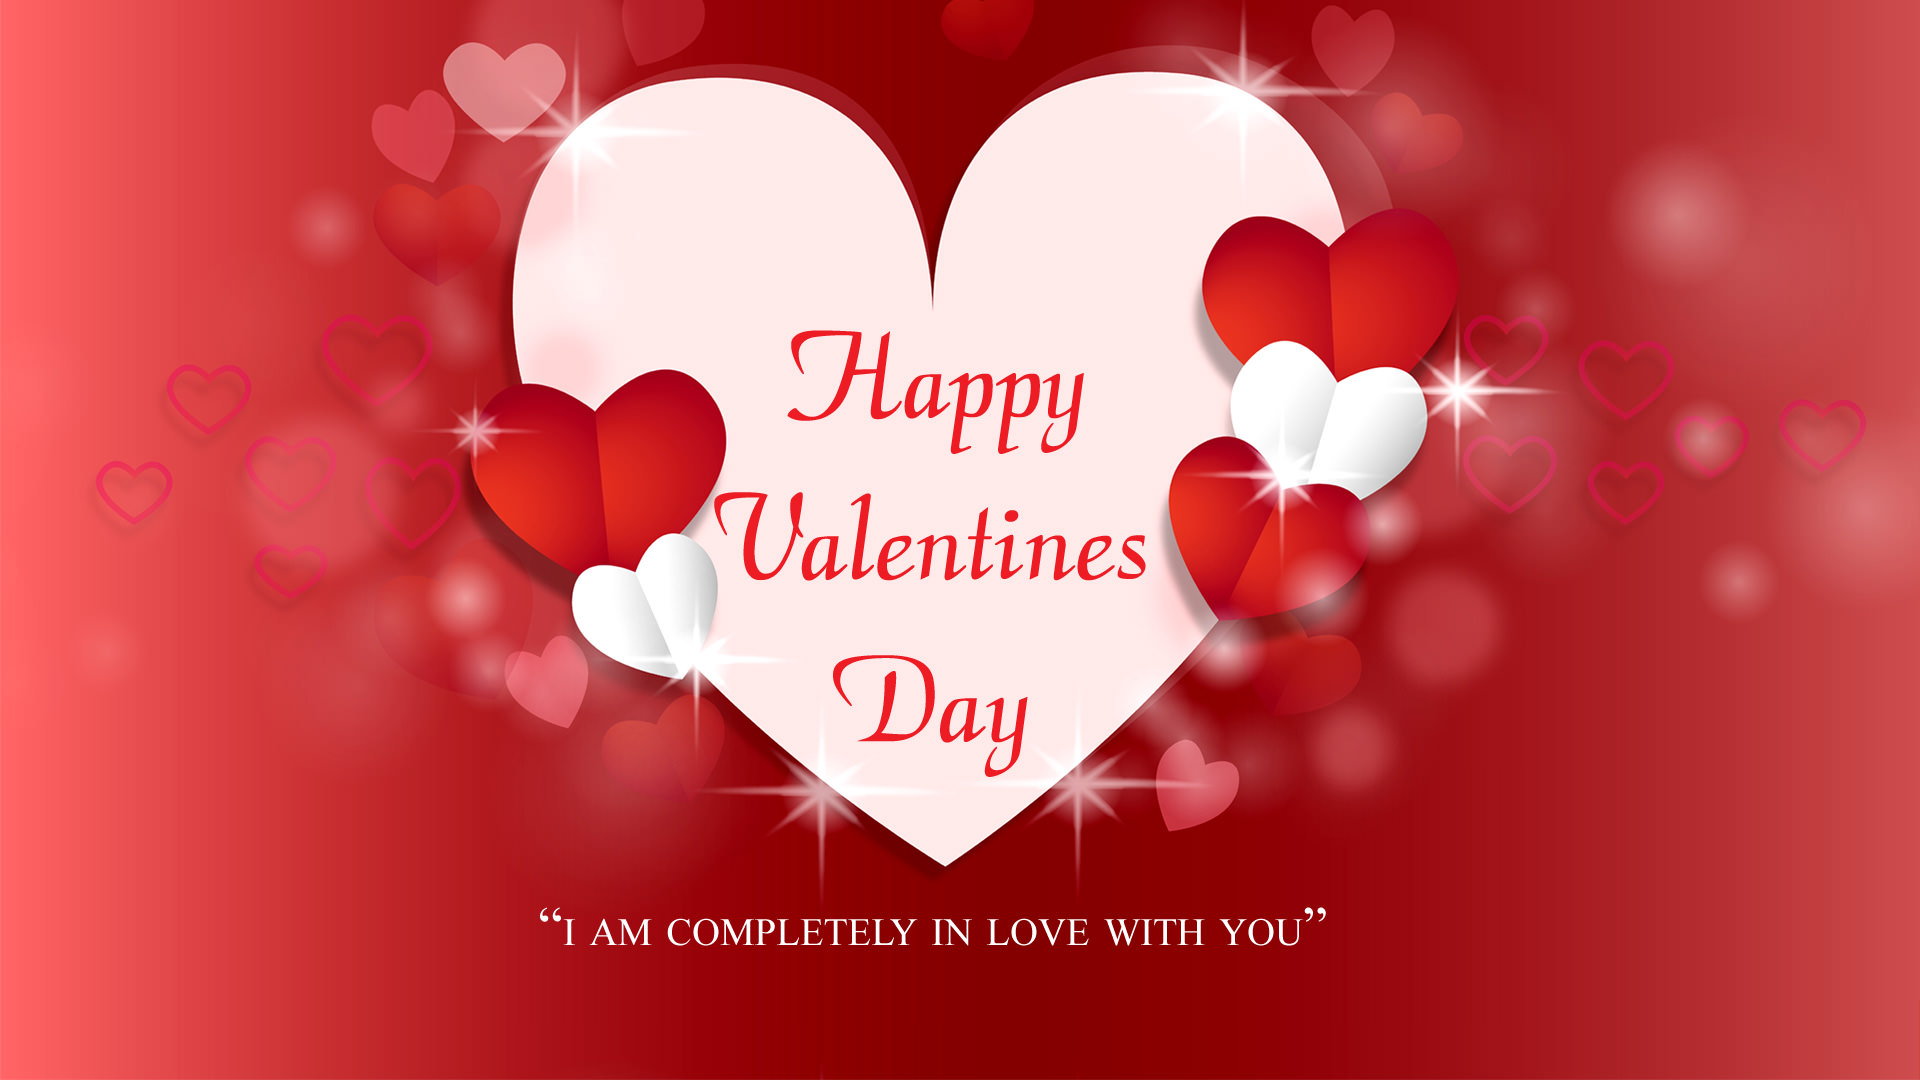 Good Wallpaper Love Lover - Red-Heart-Lovers-Day-Wallpaper  Collection_933090.jpg